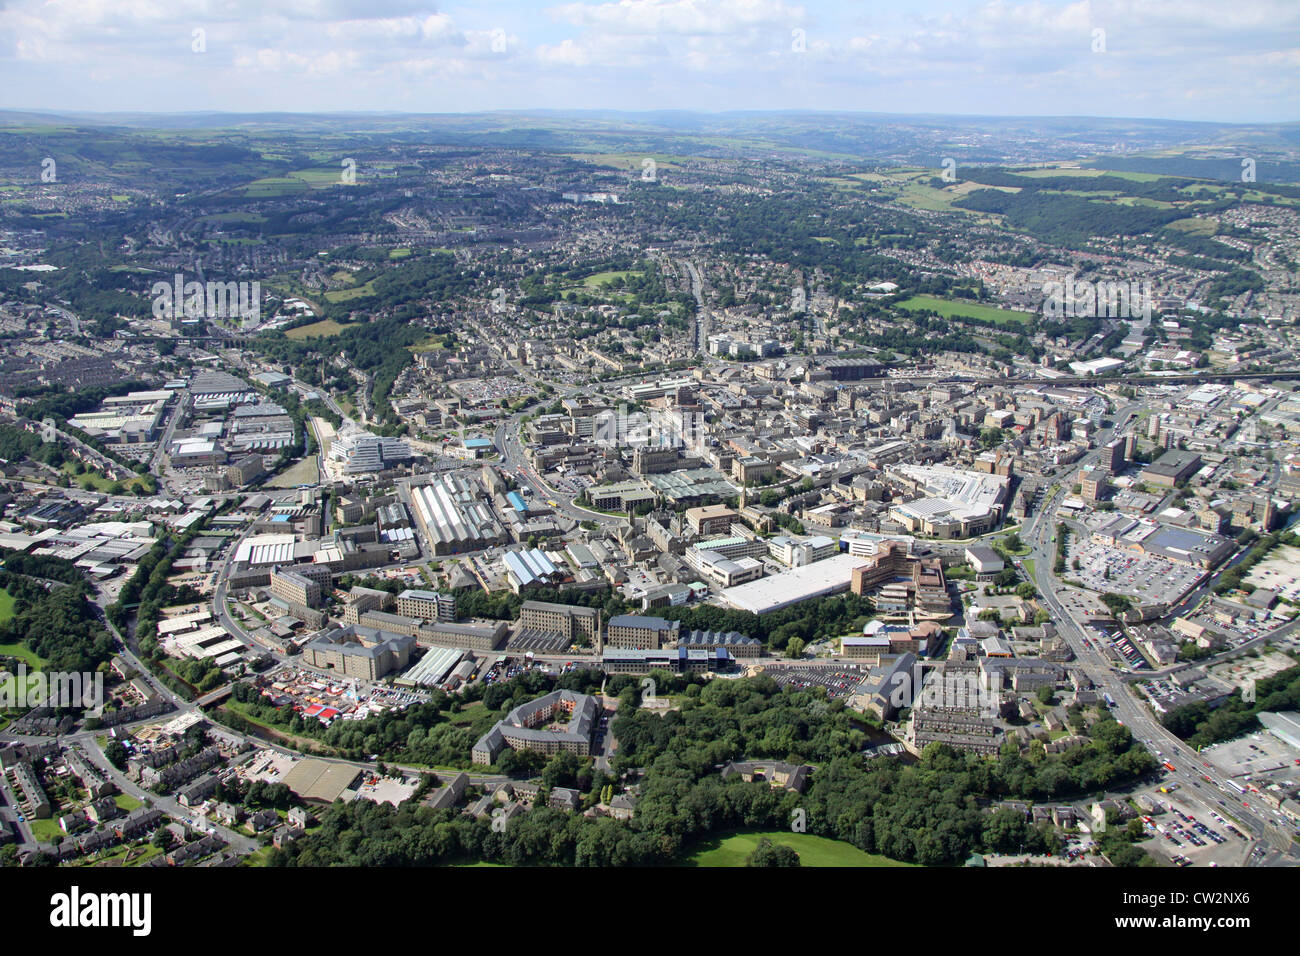 aerial view of Huddersfield town centre - Stock Image